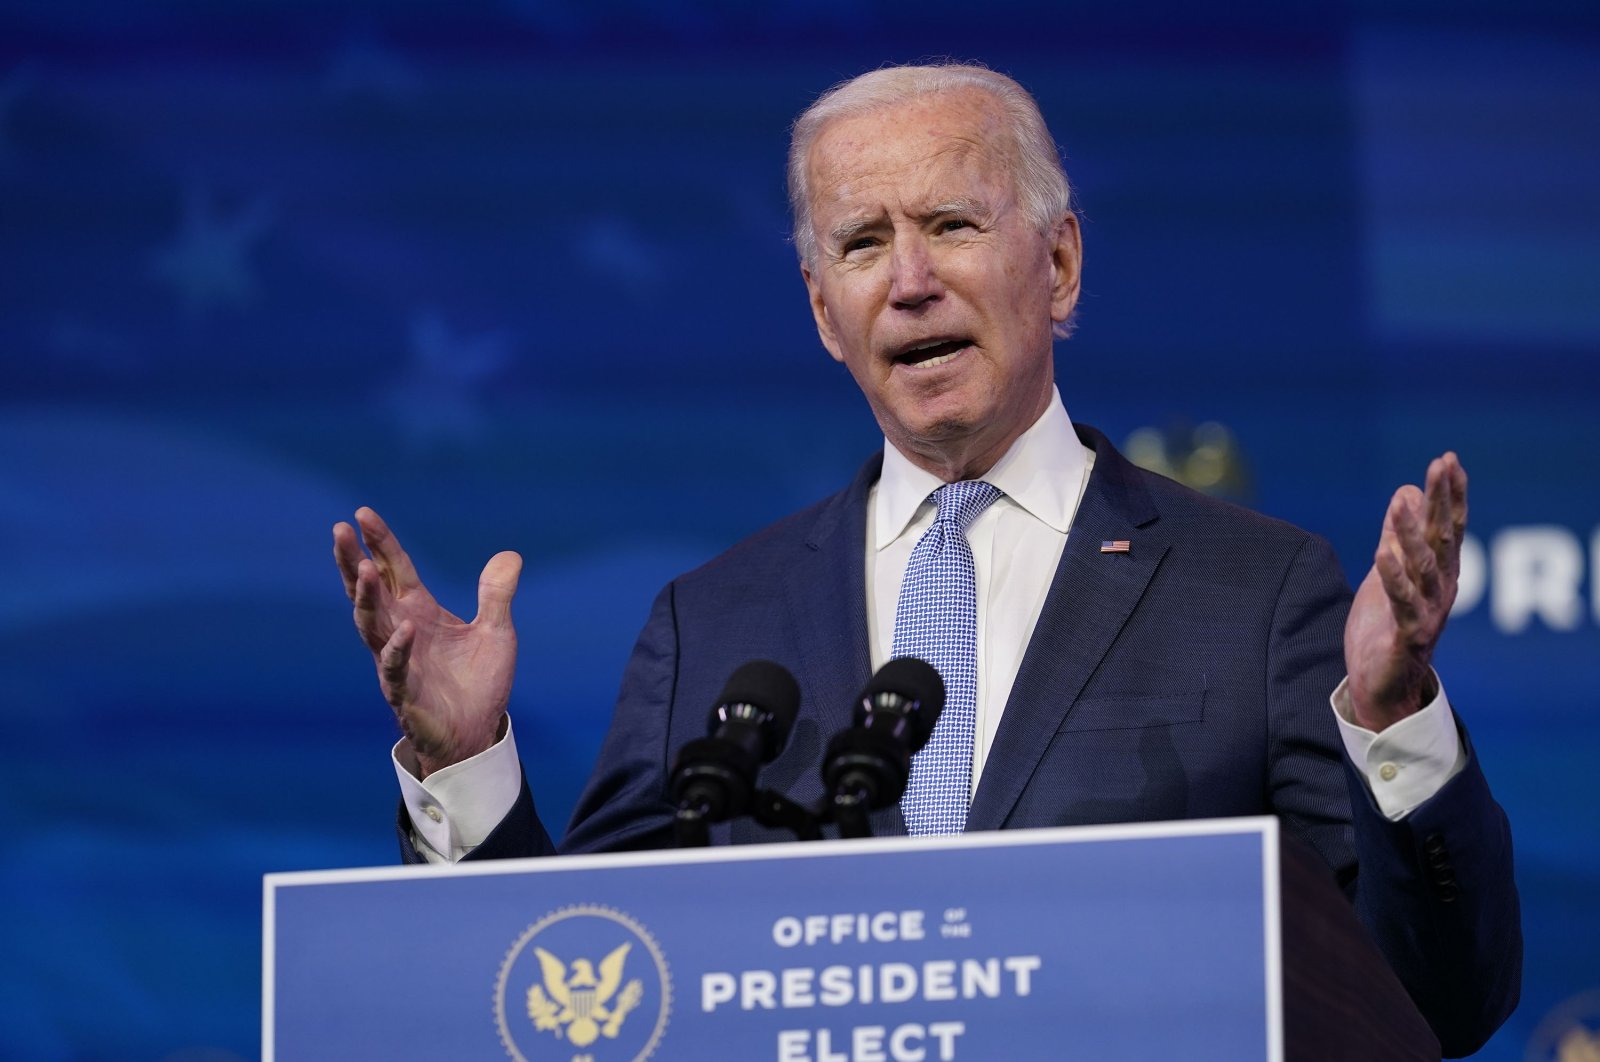 U.S. President-elect Joe Biden speaks at The Queen theater in Wilmington, Delaware, U.S., Jan. 6, 2021. (AP Photo)